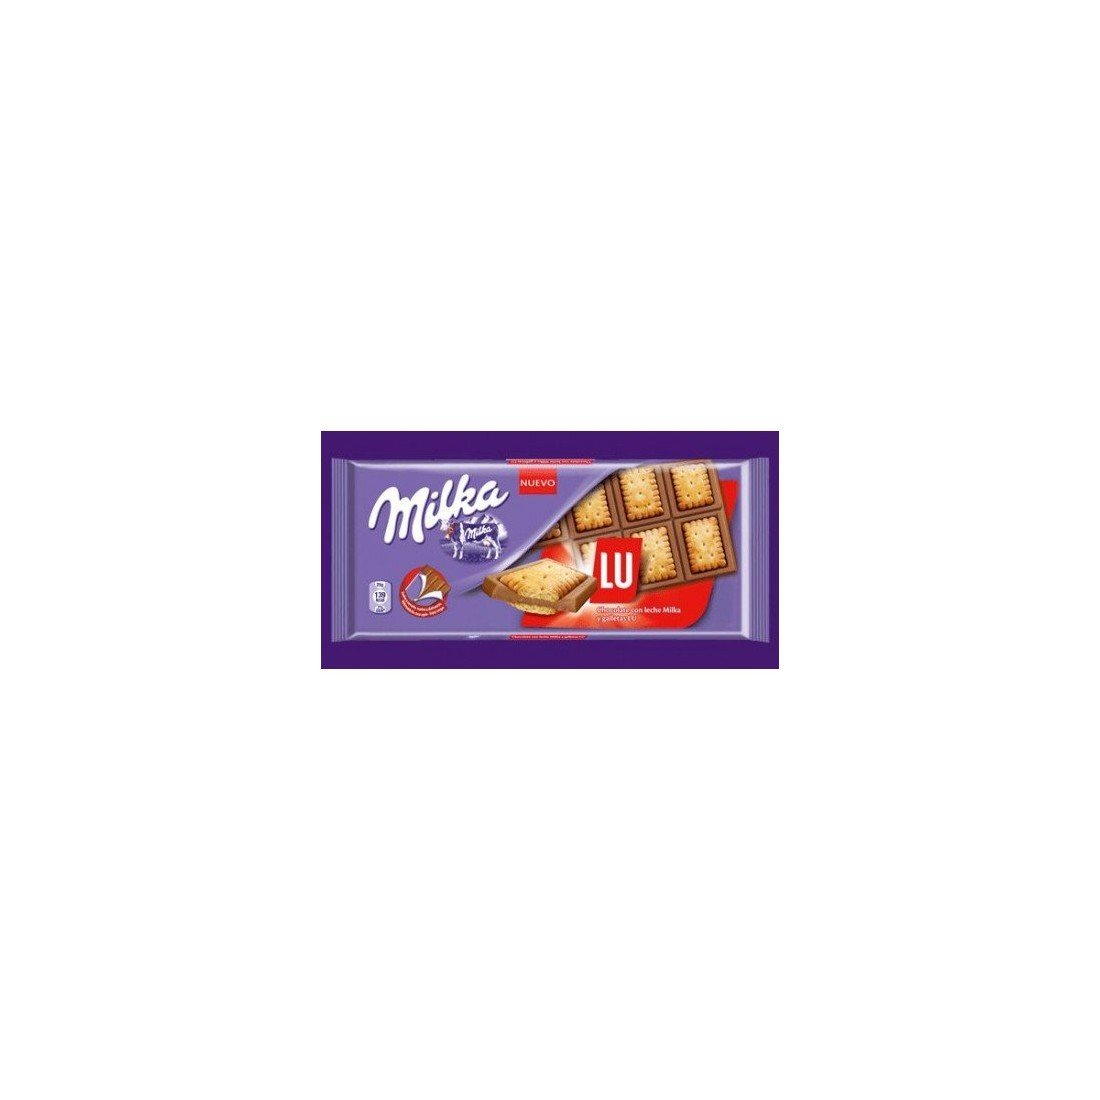 Milka Chocolate con Galletas LU - 35 gr: Amazon.es: Alimentación y bebidas